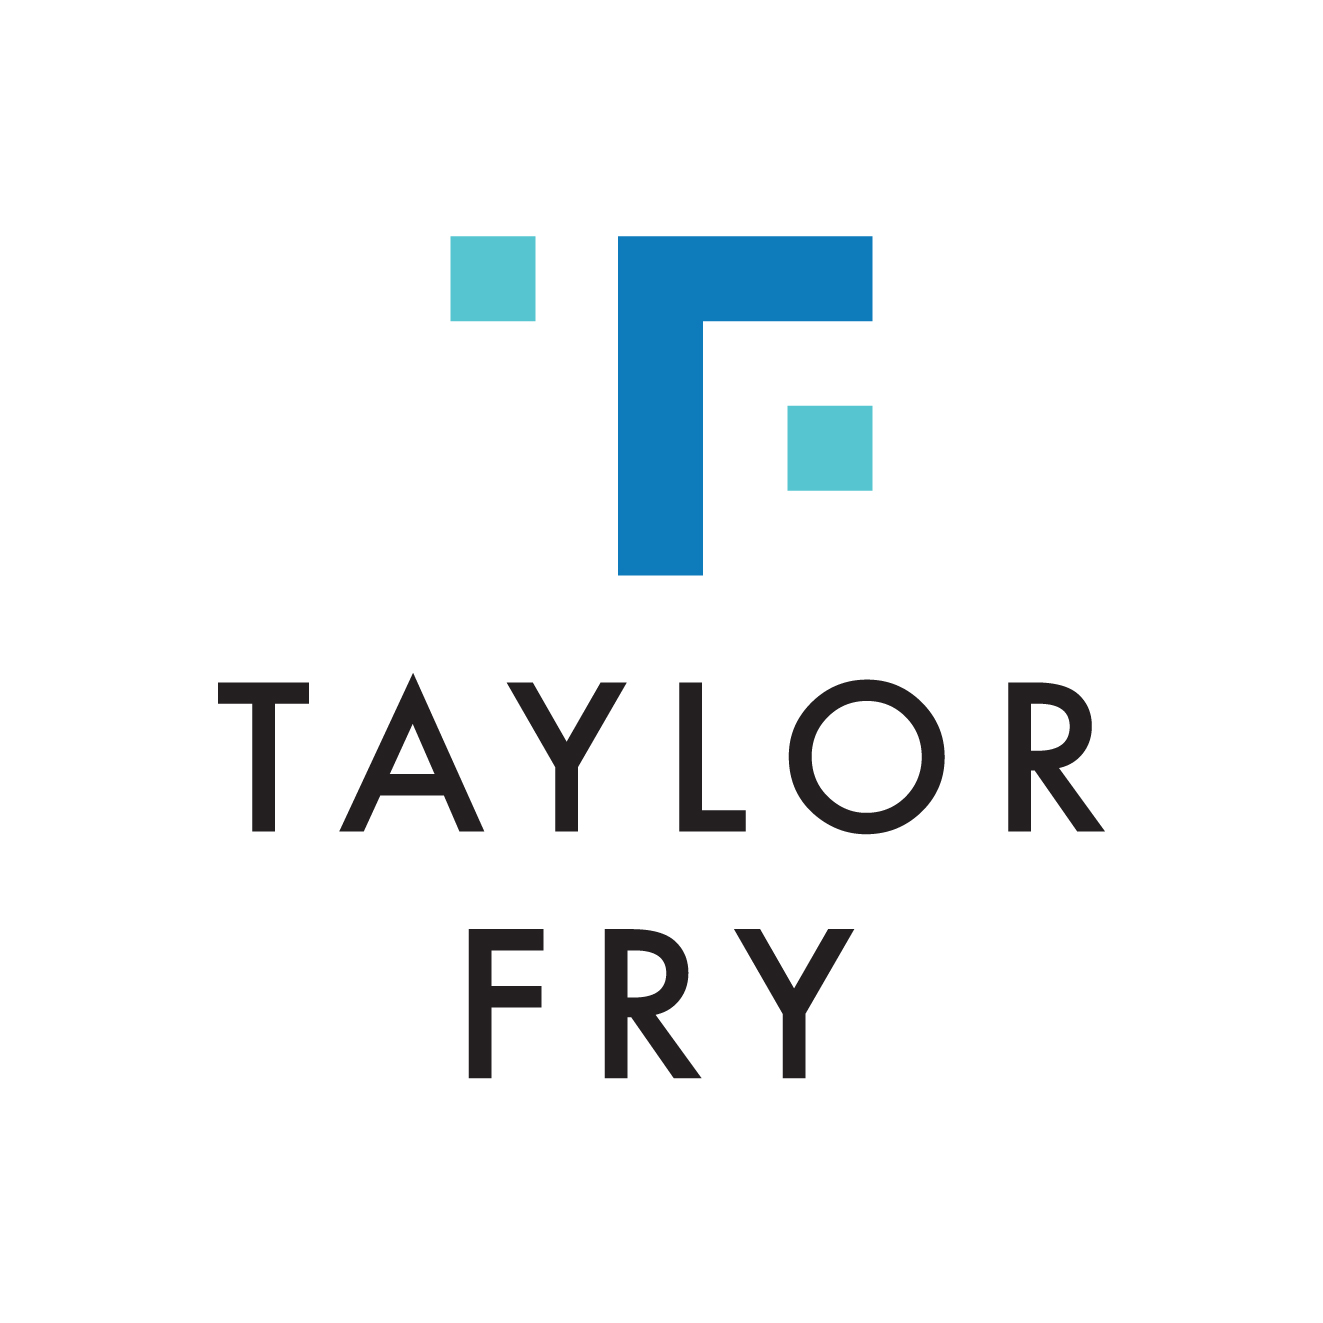 Taylor-Fry